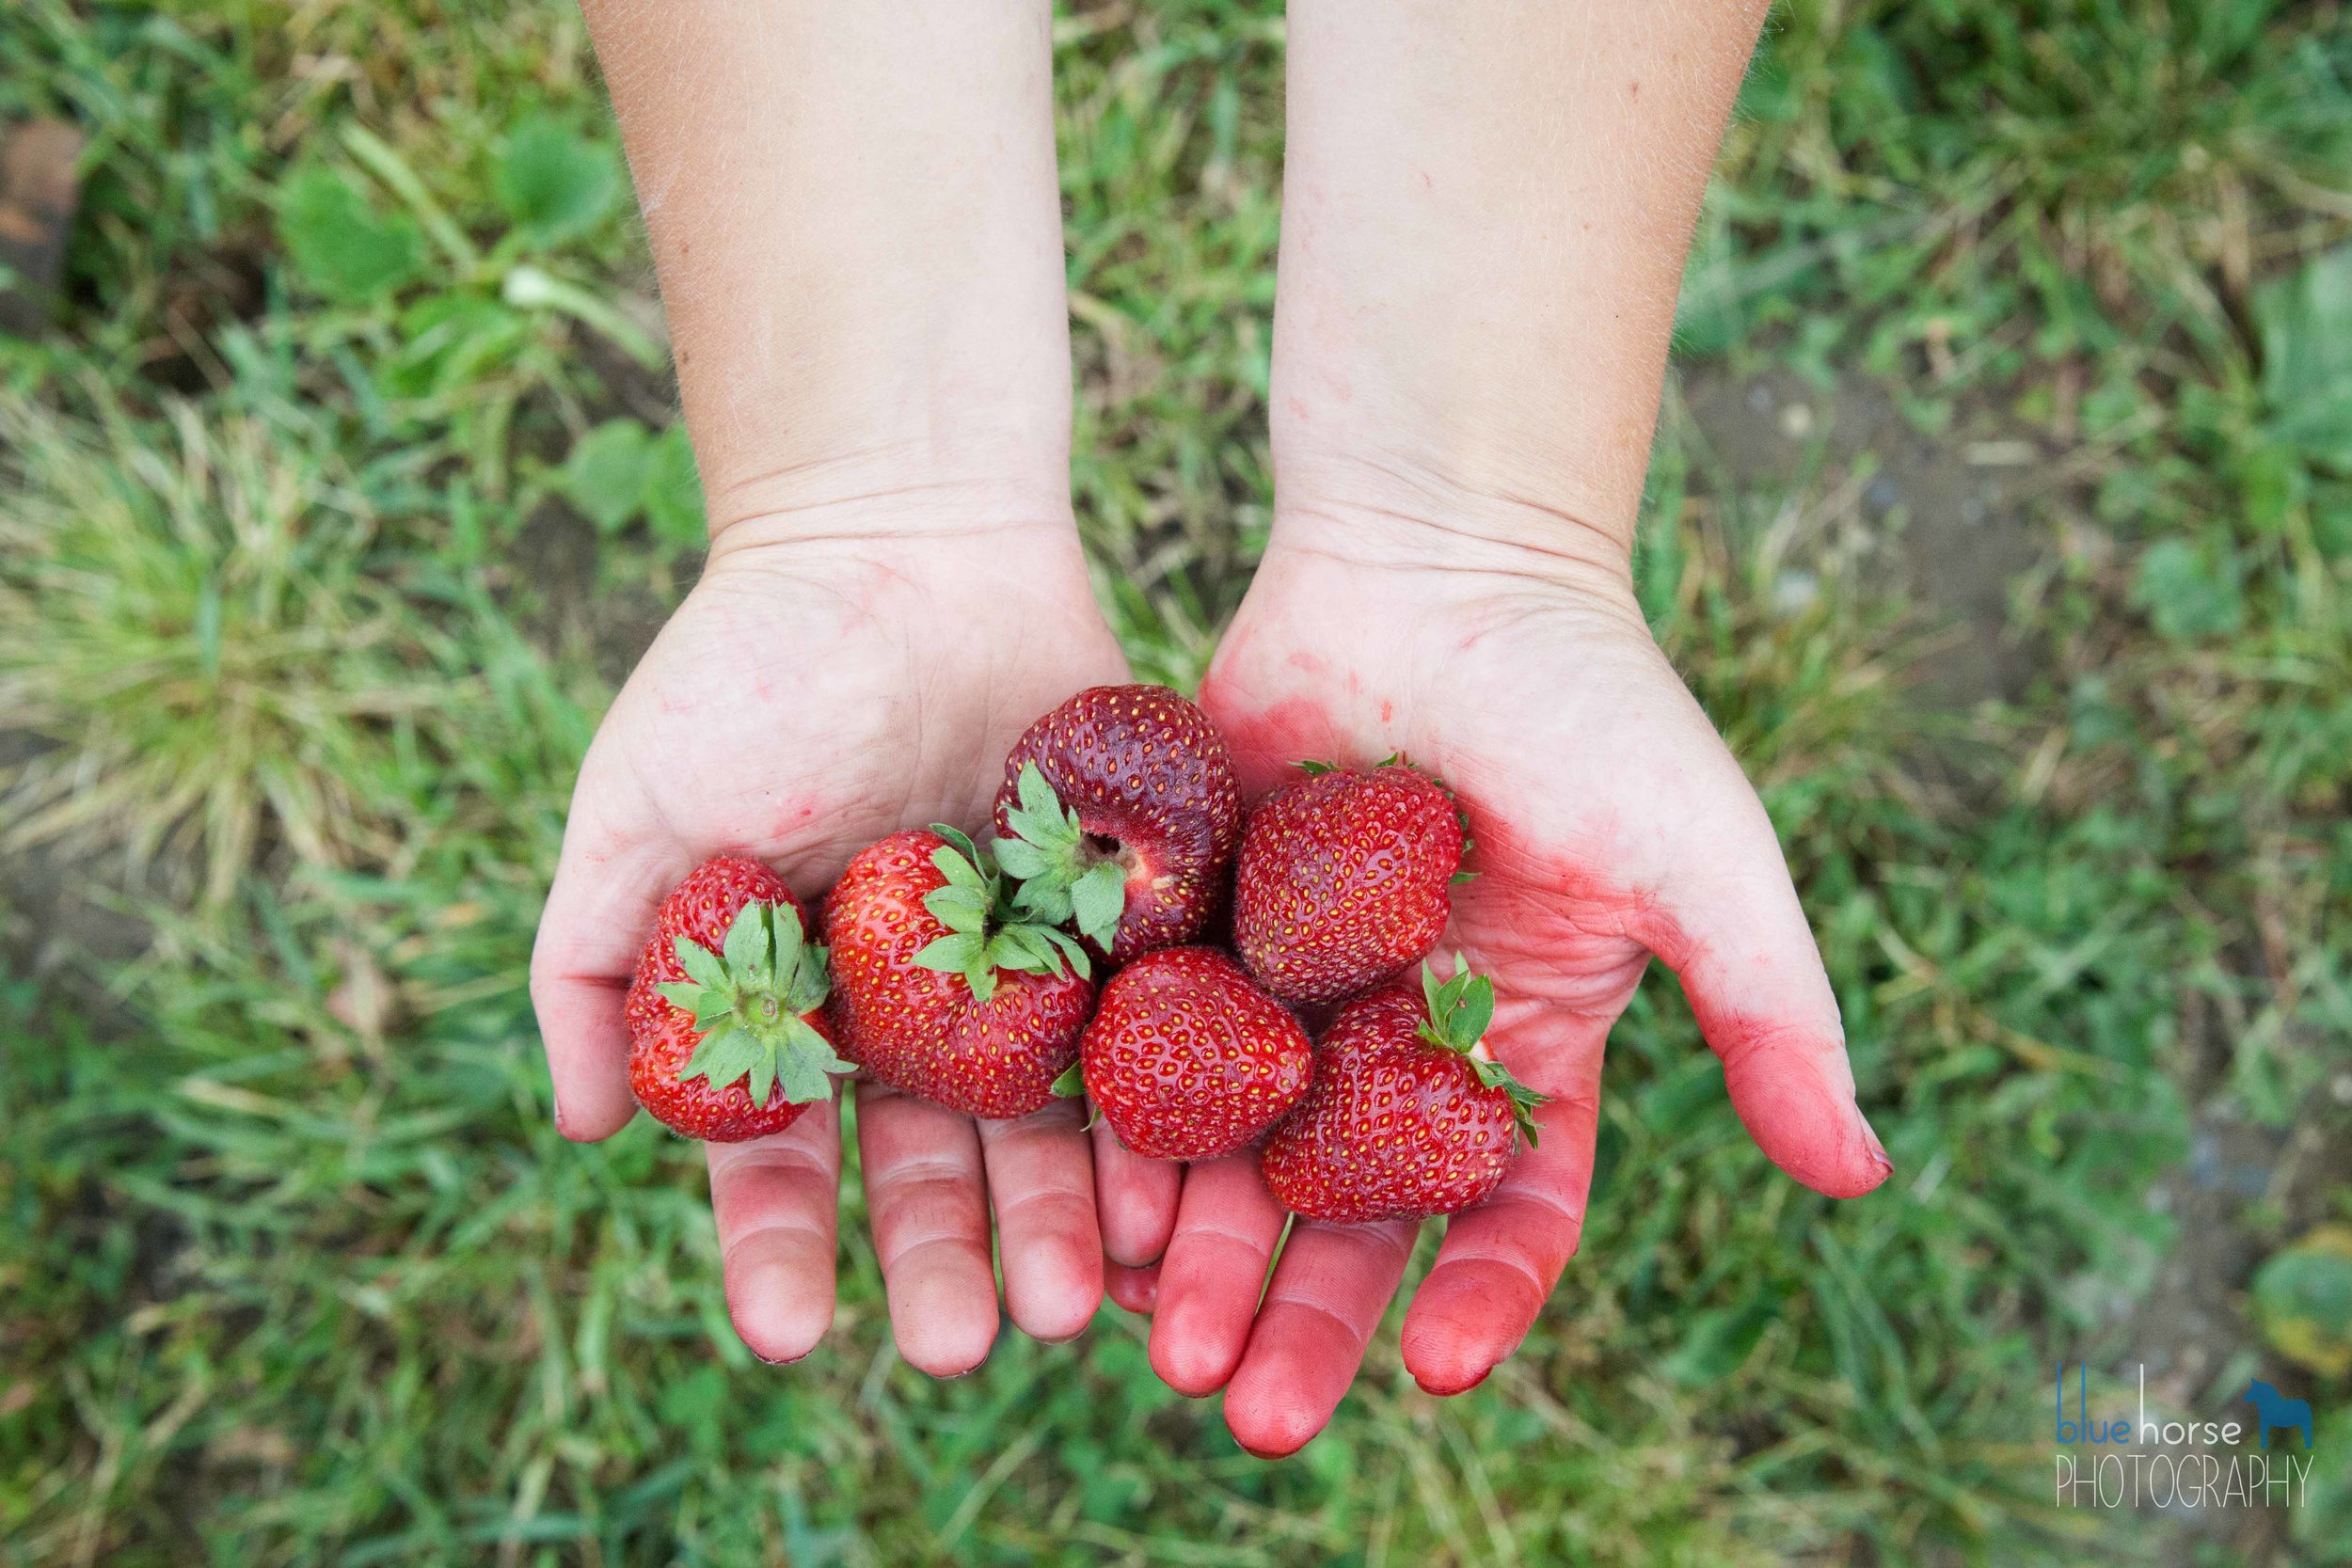 CSA members also get first access to our coveted organic pick-your-own strawberries fields